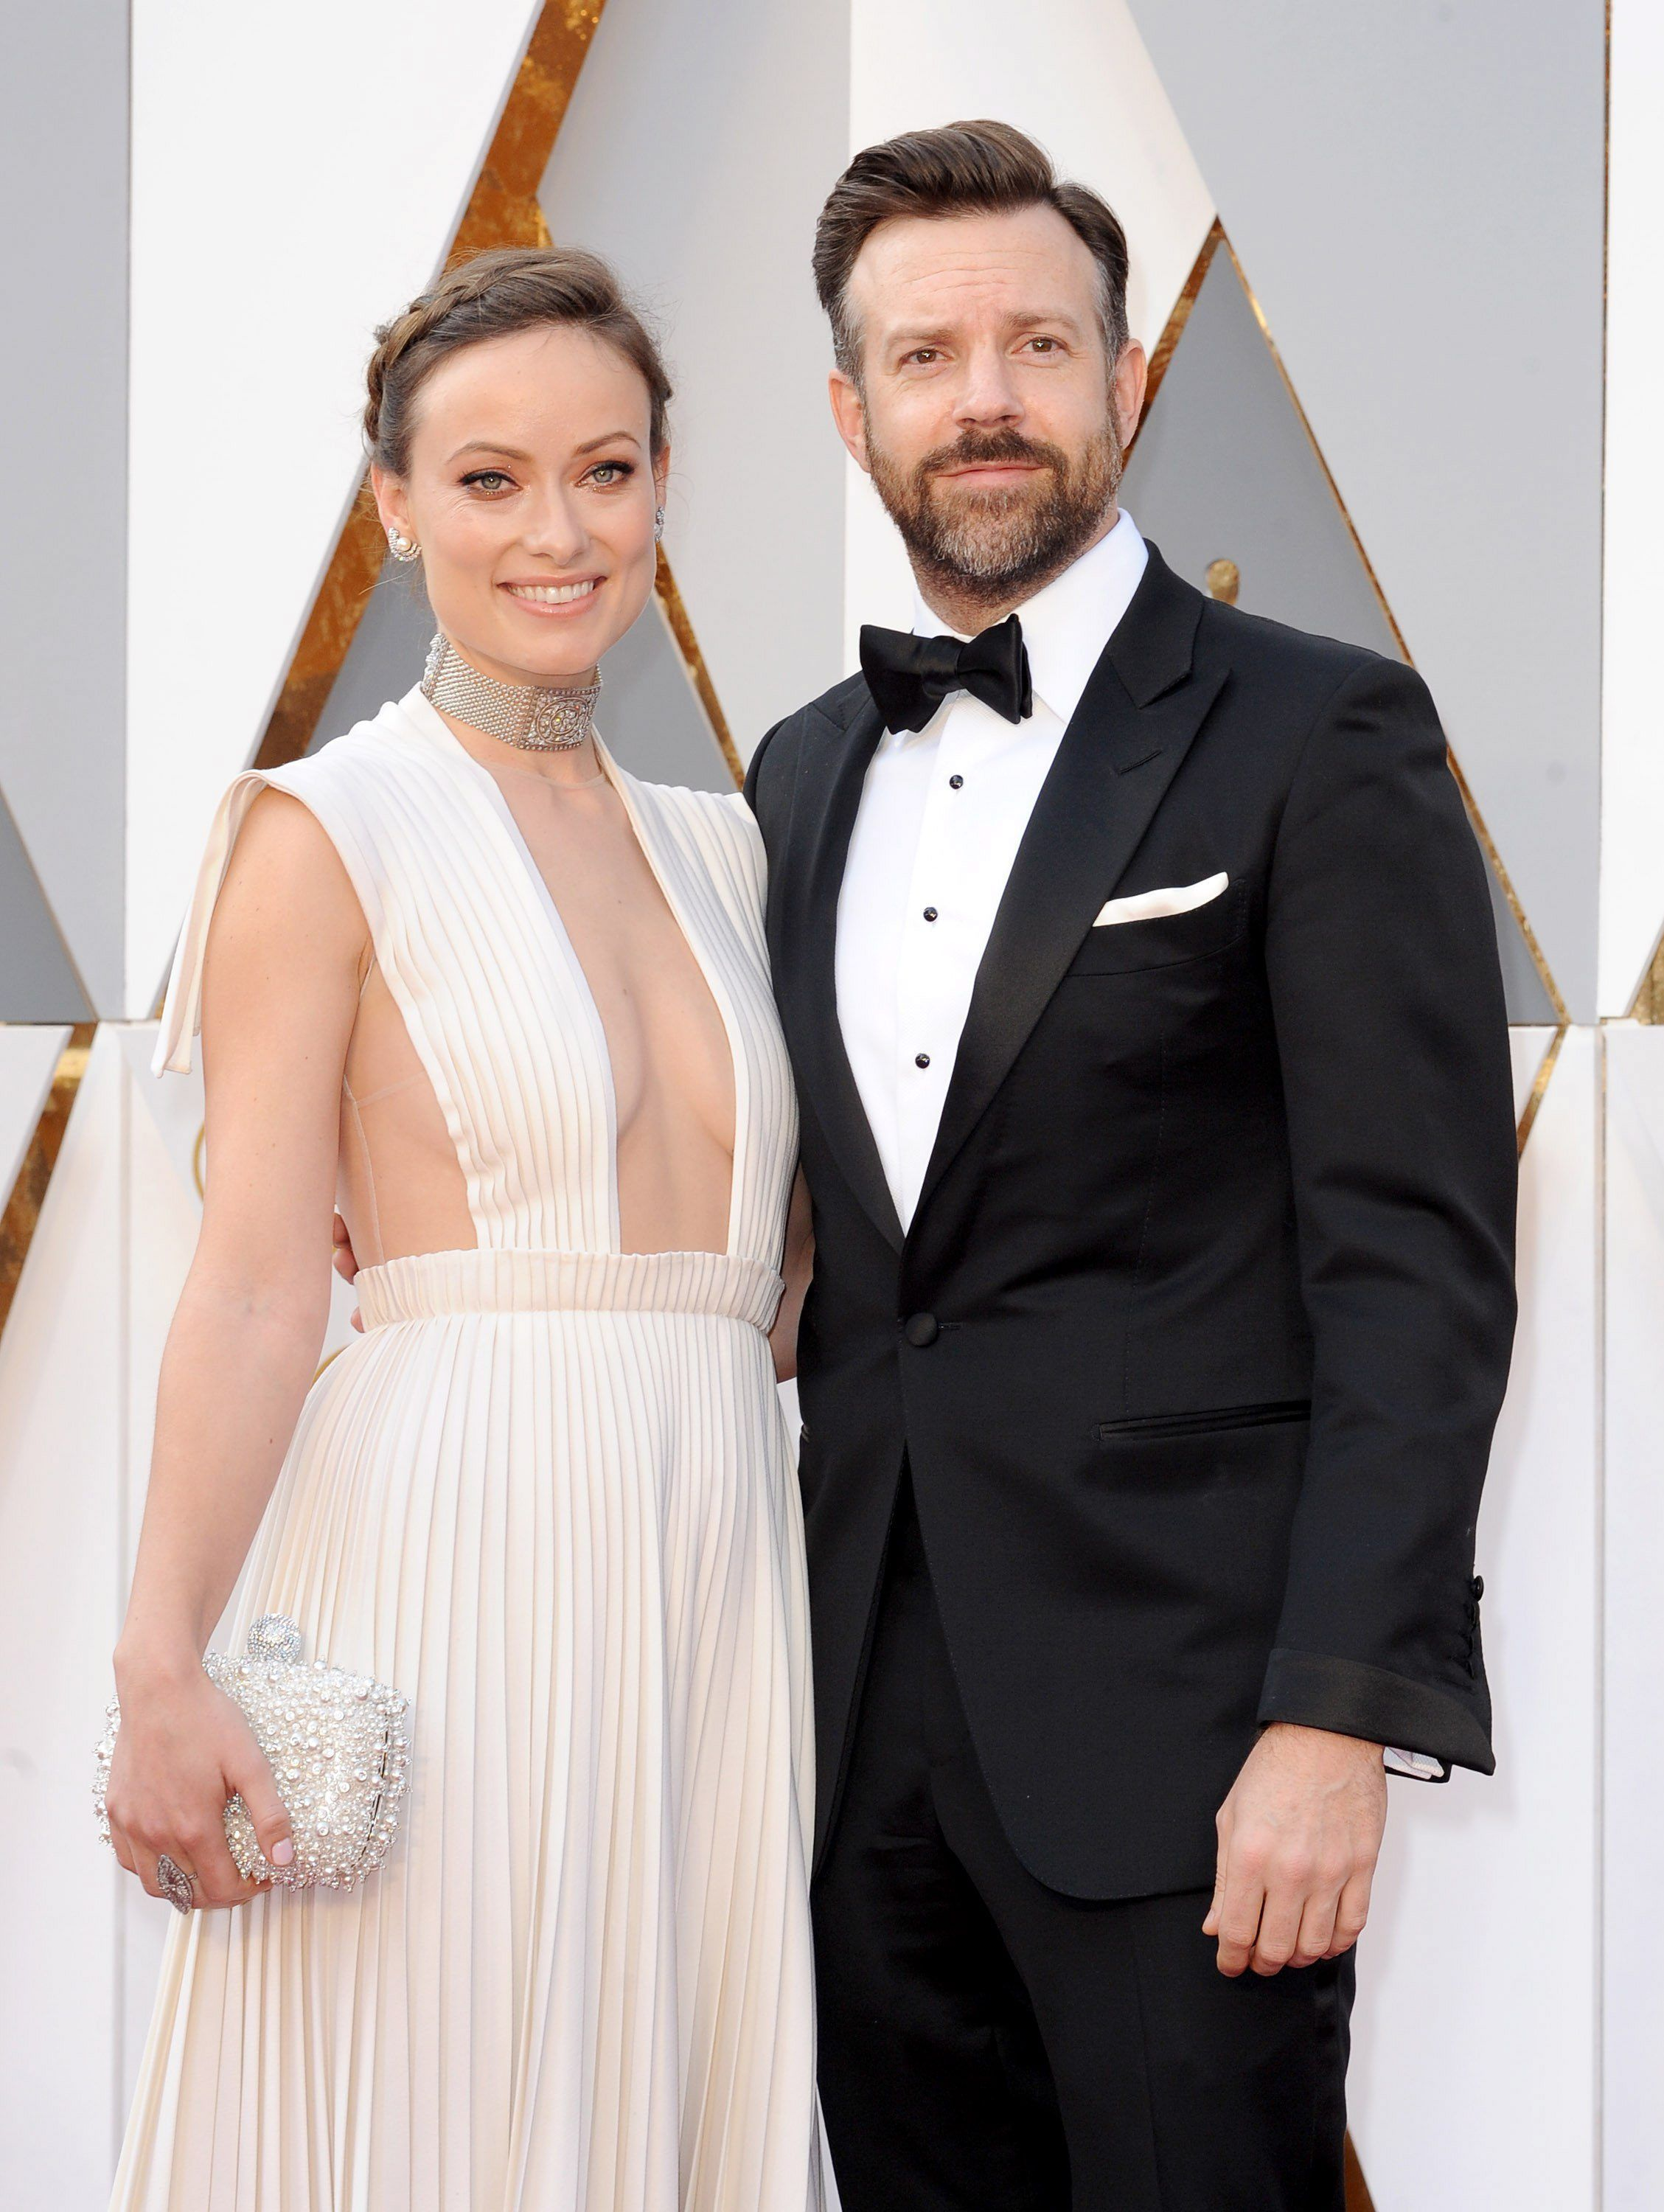 10 Things You Didn't Know About Olivia Wilde And Jason Sudeikis' Relationship - Fame10